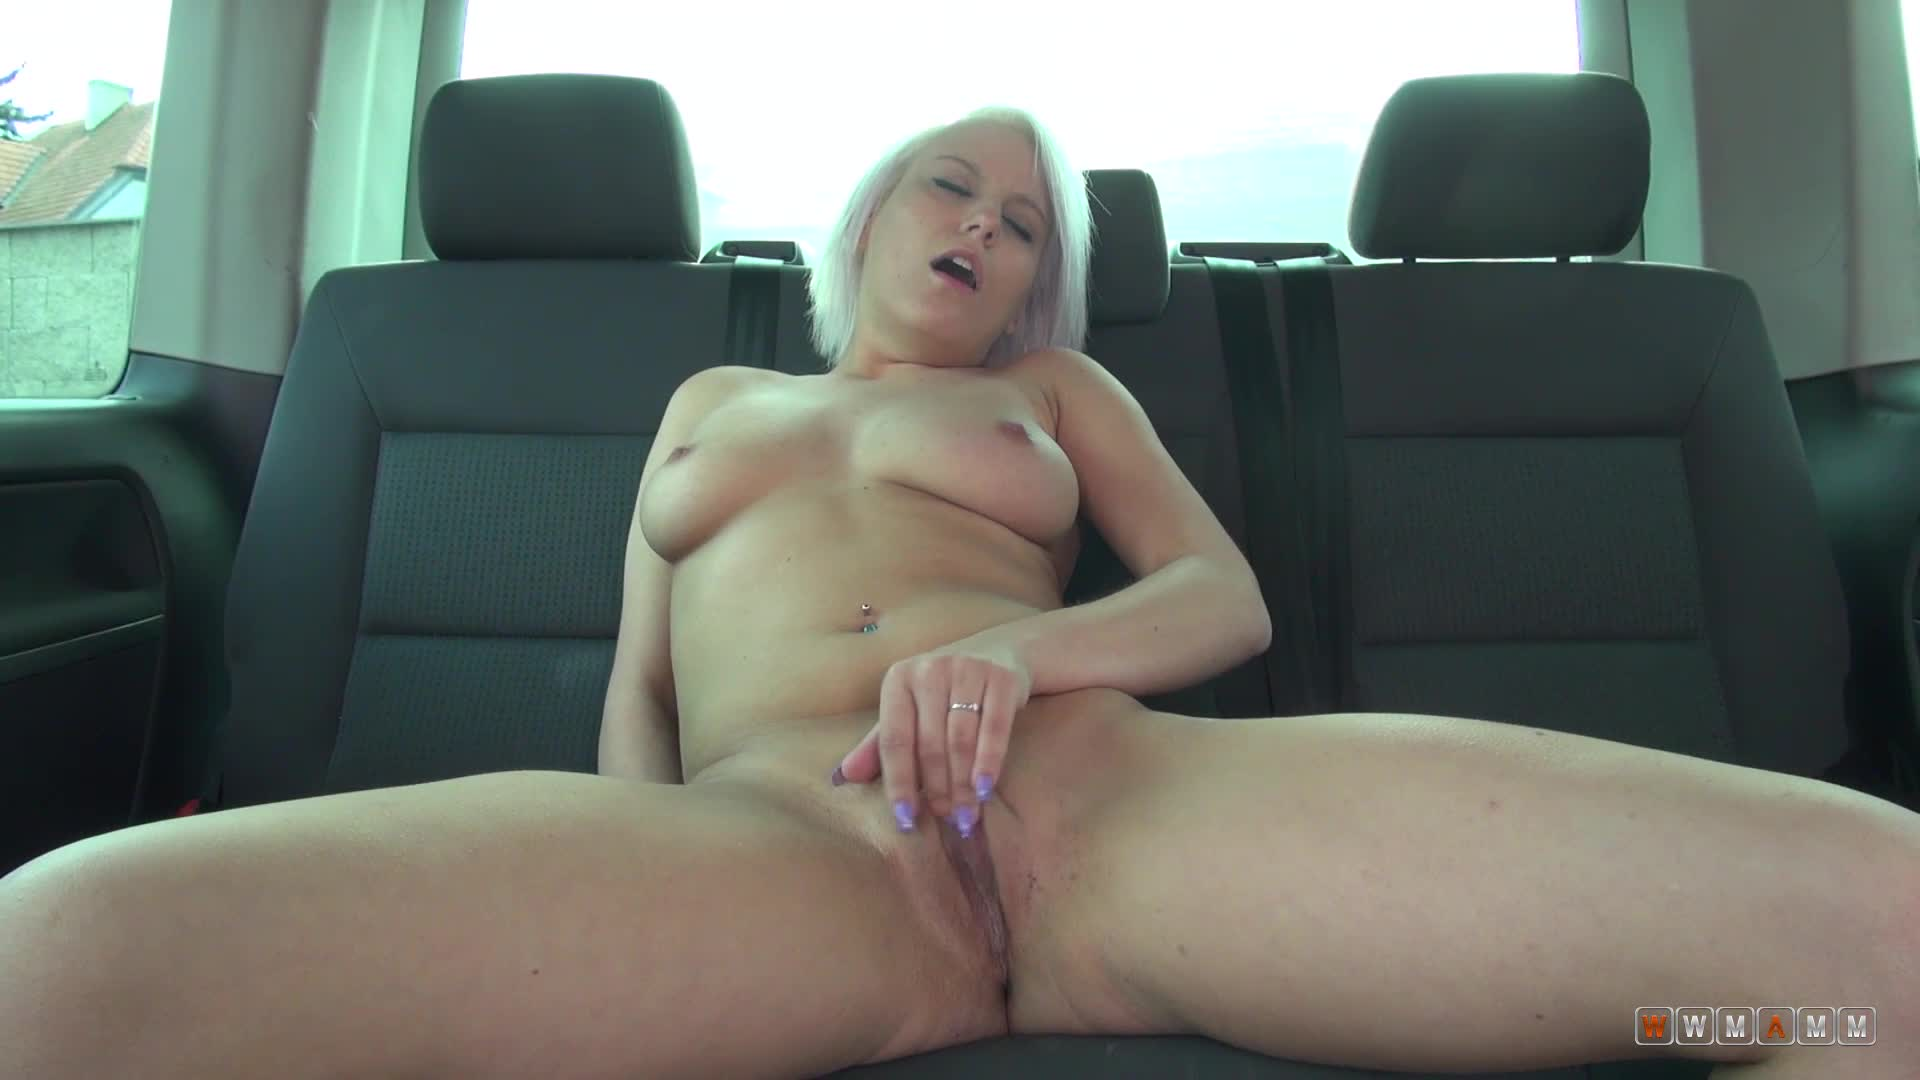 All Natural Emo Teen Lucy Fingers Get Soaked In Her Wet Pussy